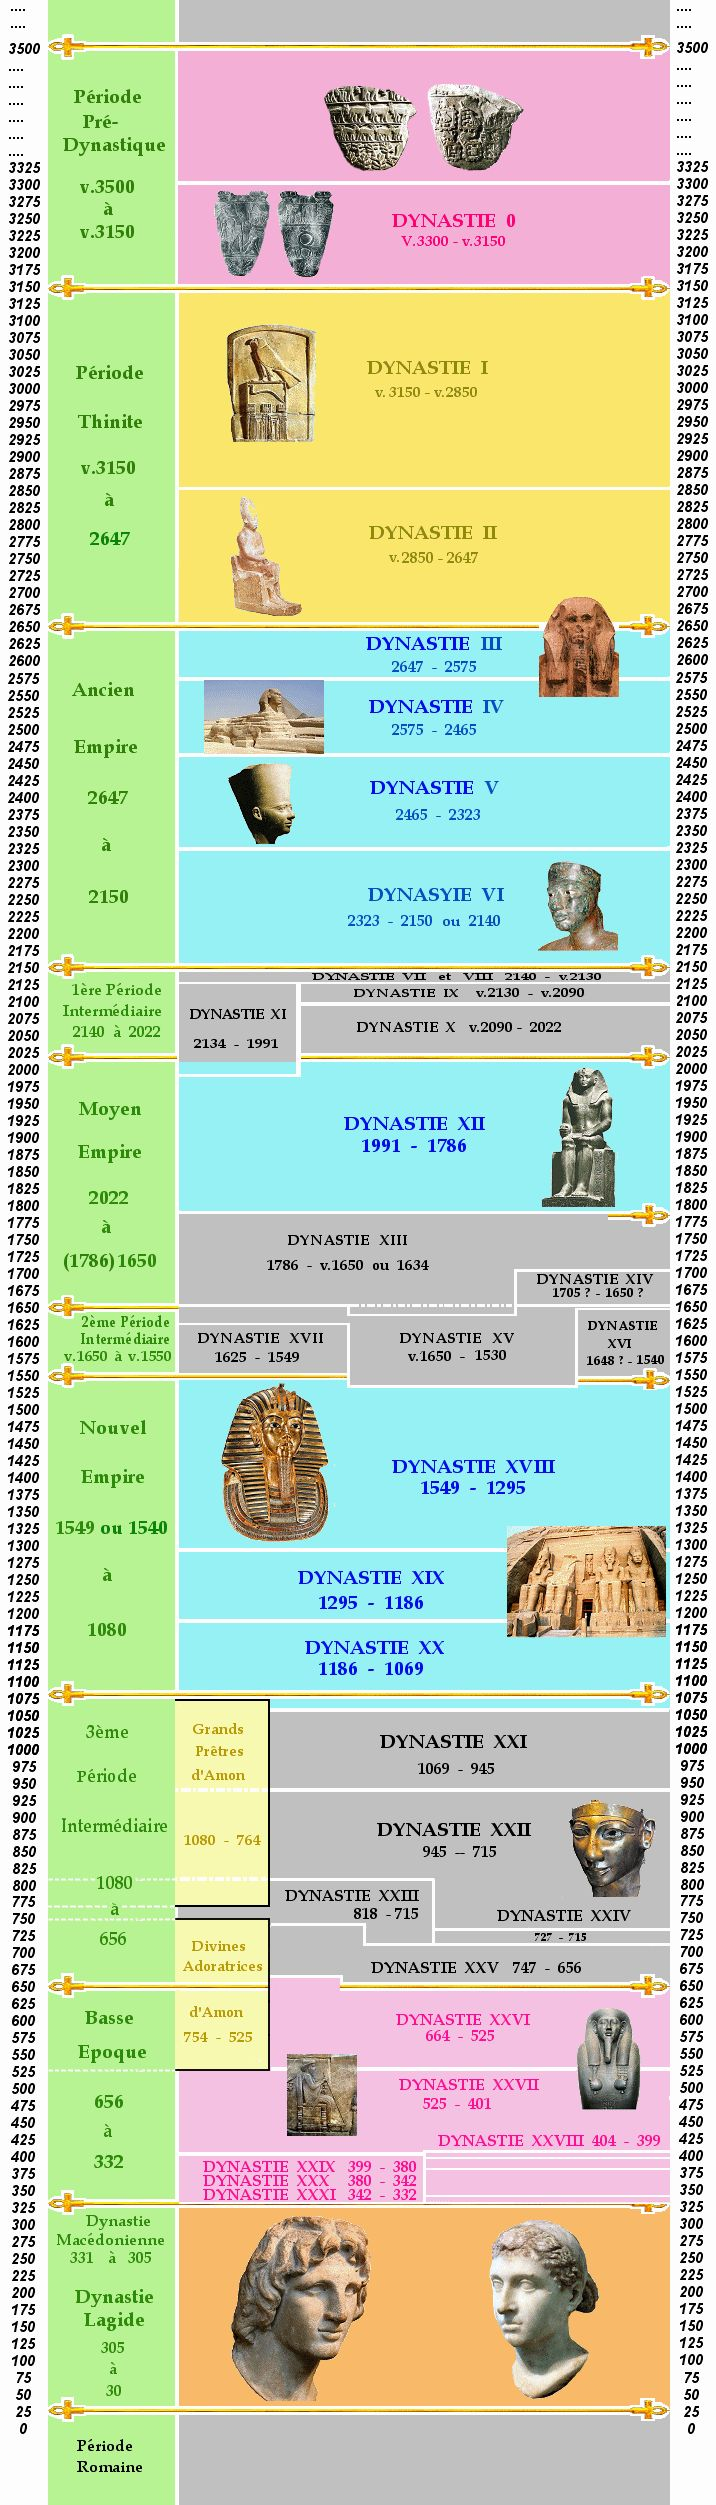 NEO NEW KINGDOM 22nd to 25th DYNASTIES - 25th Dynasty should begin about 820 BCE with the Service of Nesi (Pharaoh) Khasta. The 26th Dynasty forward should be classified as the 4th Intermediate Period because these proxy kings were in the service of various invading barbarians: Assyrians, Persians, Greeks ect.  Chronologie de l'histoire de l'Egypte antique